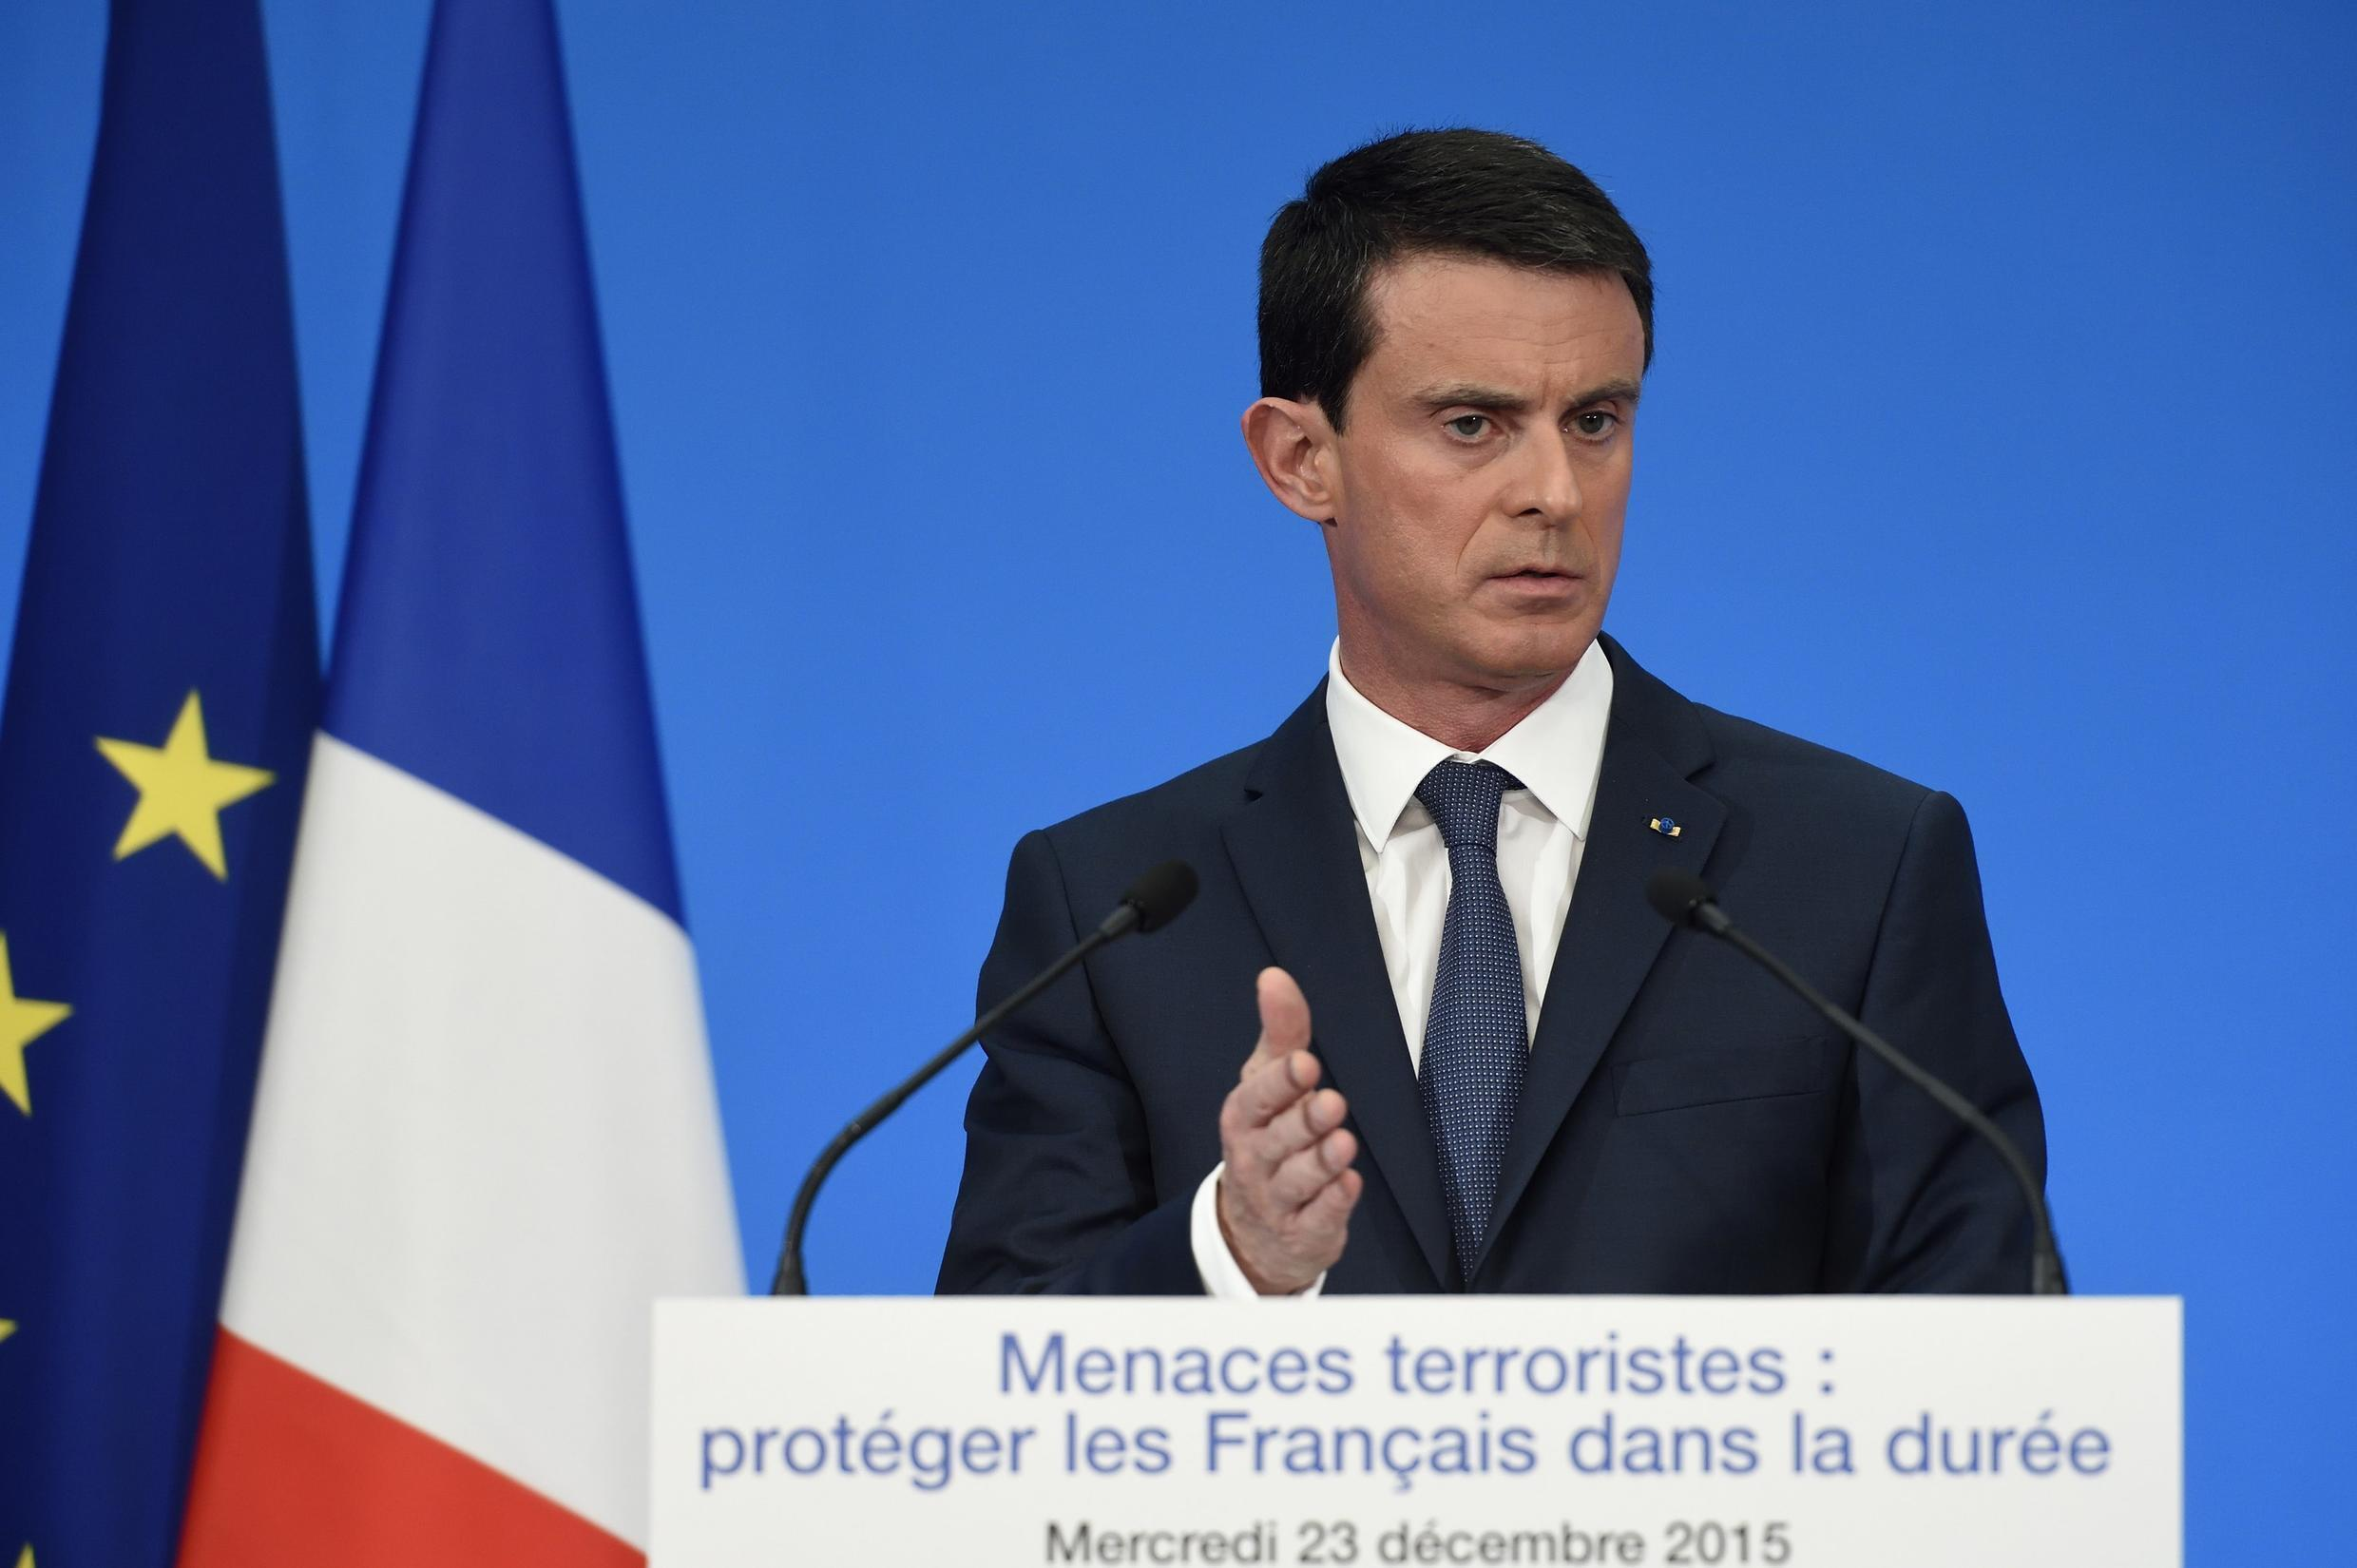 French Prime Minister Manuel Valls said that the parliamentary debate on the reform proposal will take place from February 3.